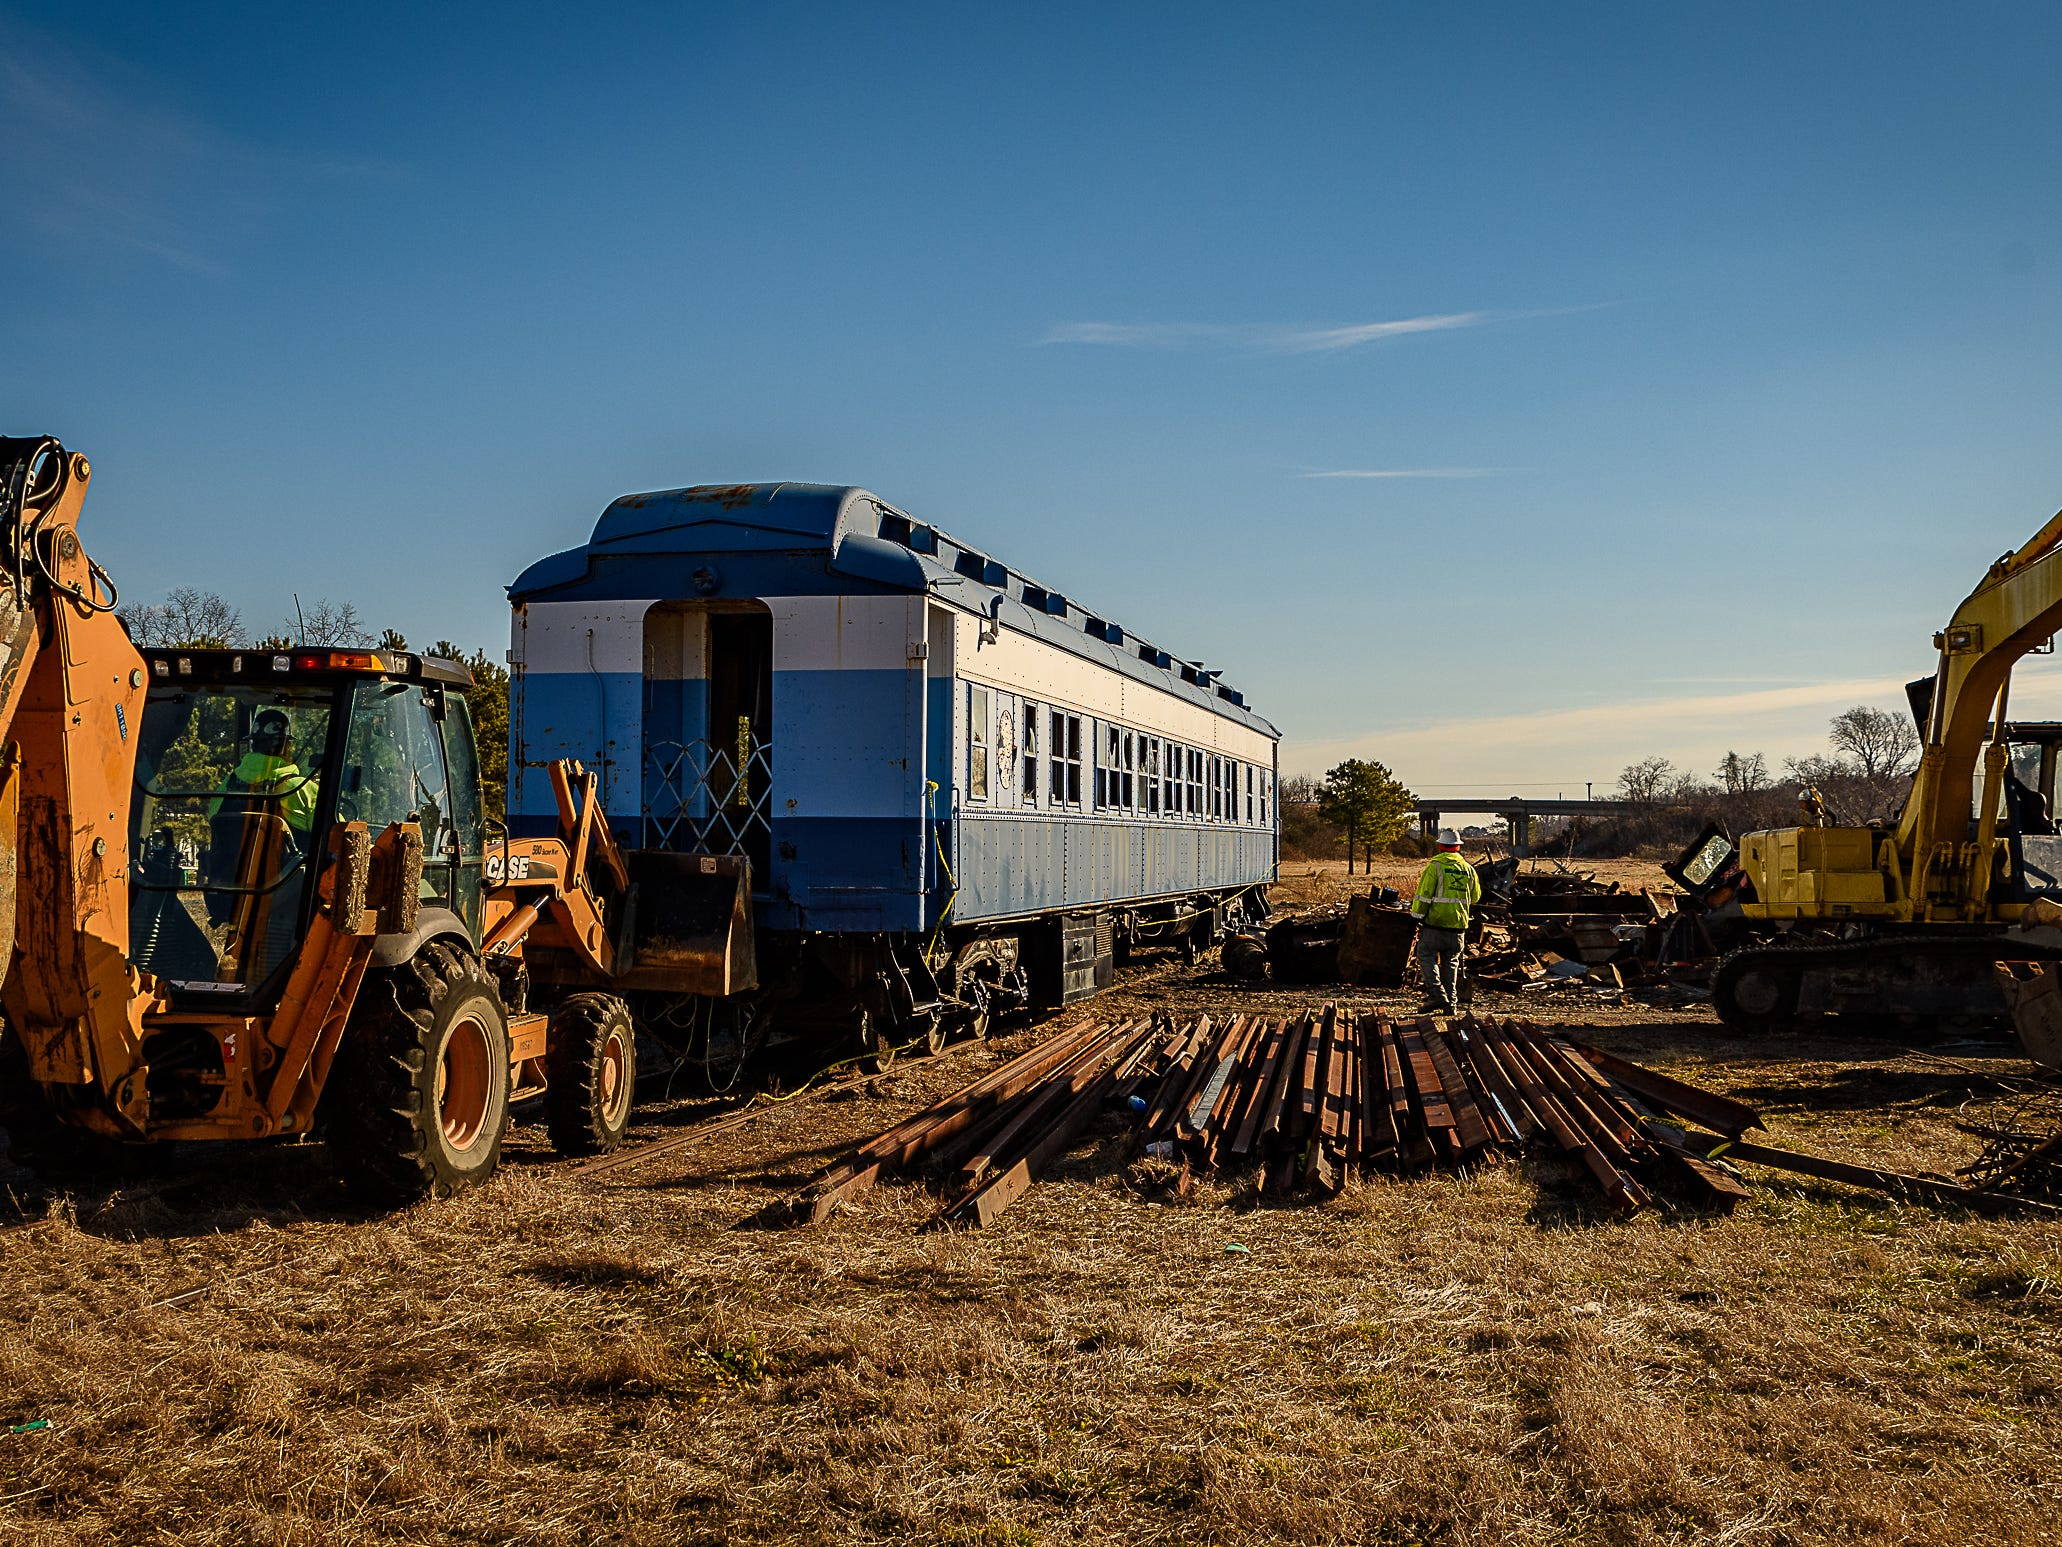 The railway car is pushed past the remains of a Bay Coast engine and salvaged rails.